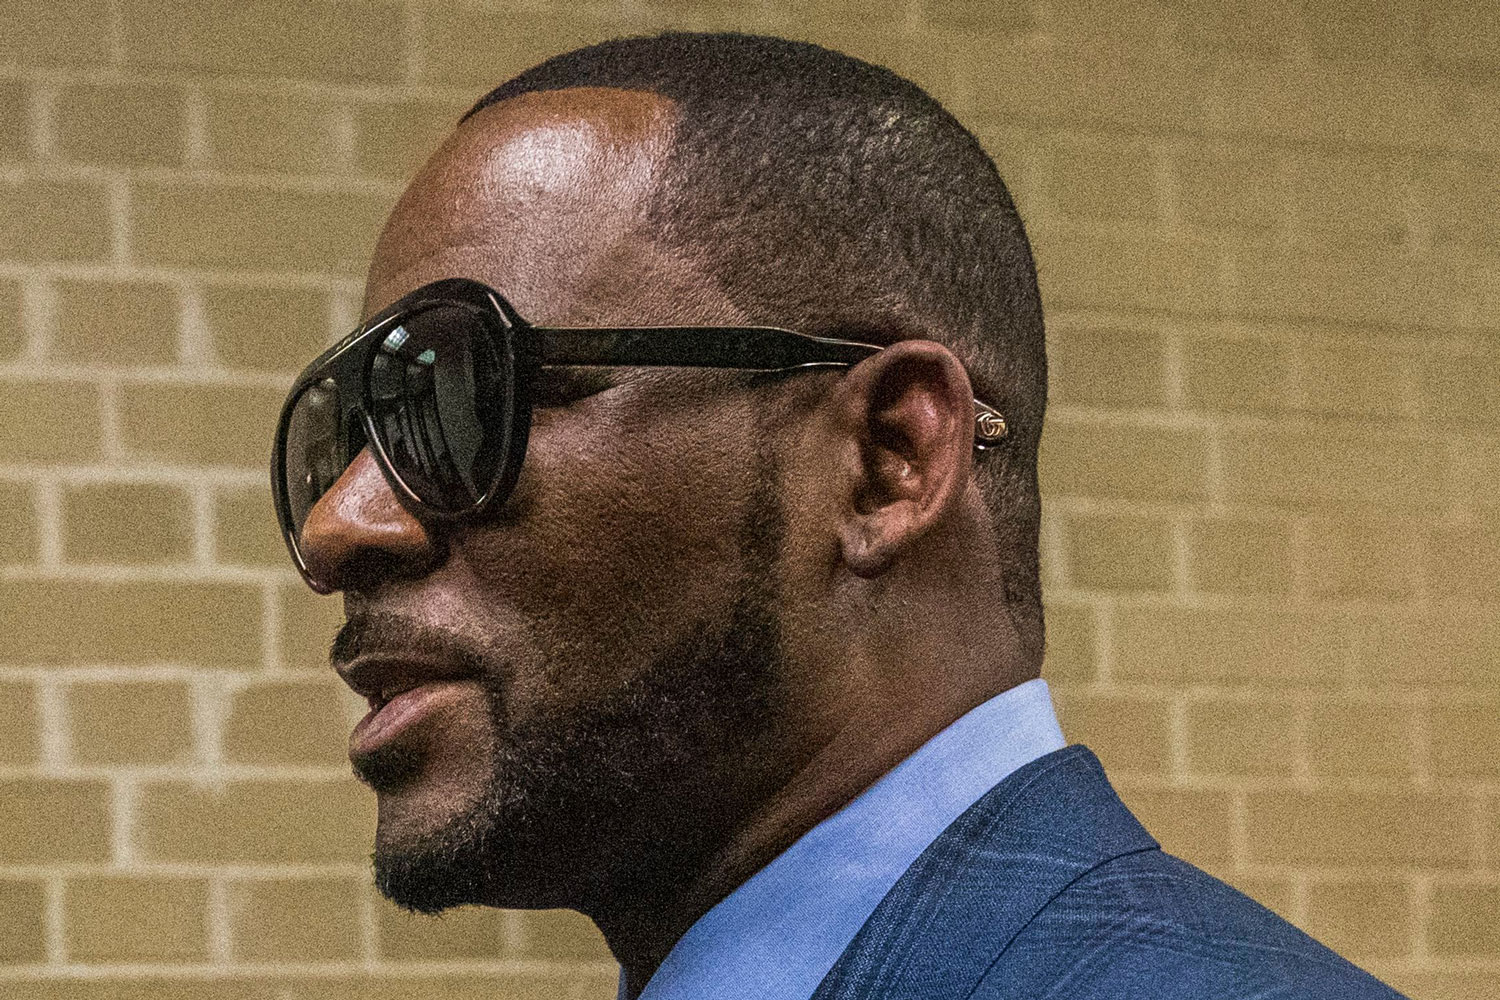 R. Kelly's New York Federal Racketeering Arraignment Set for August